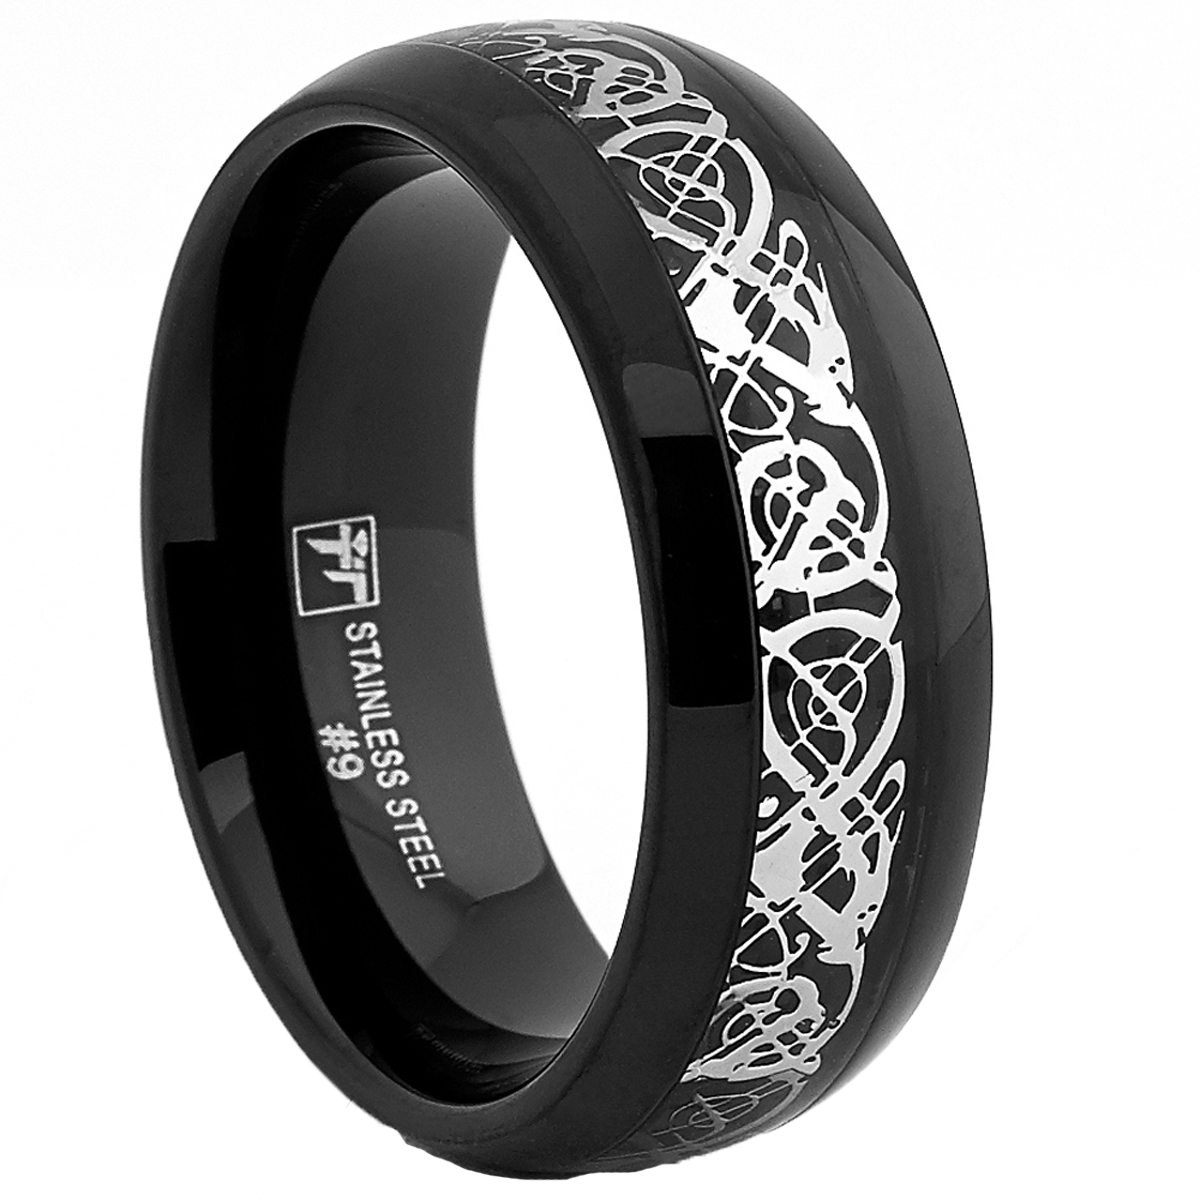 Dome Stainless Steel Black Men's Ring Band With Celtic Dragon Inlaid Design, 8mm Comfort Fit